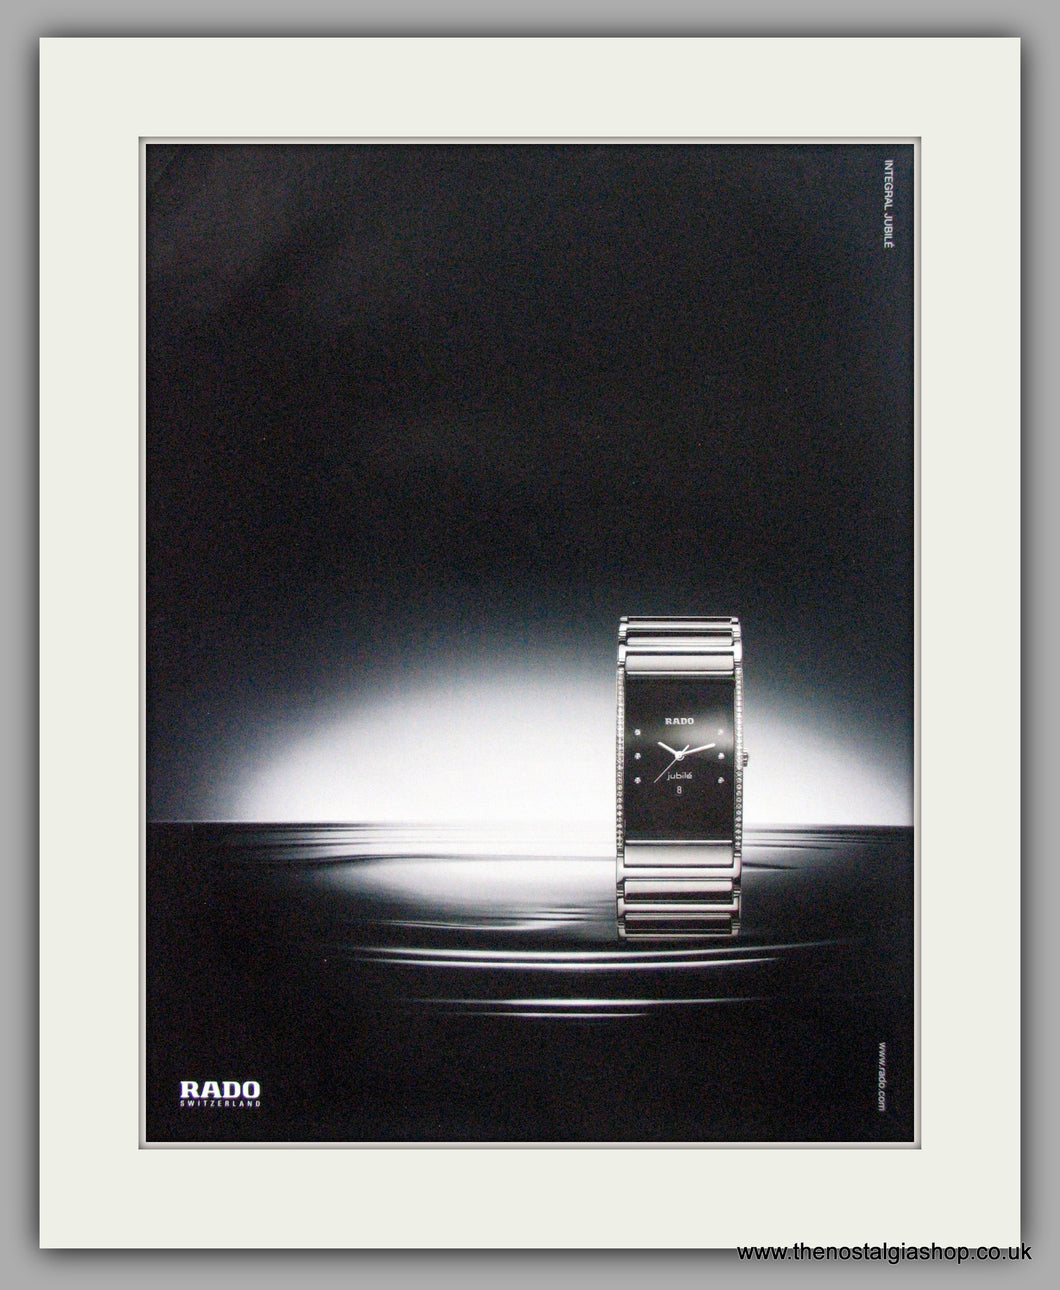 Rado Integral Jubile Watches. Original Advert 2009 (ref AD7976)